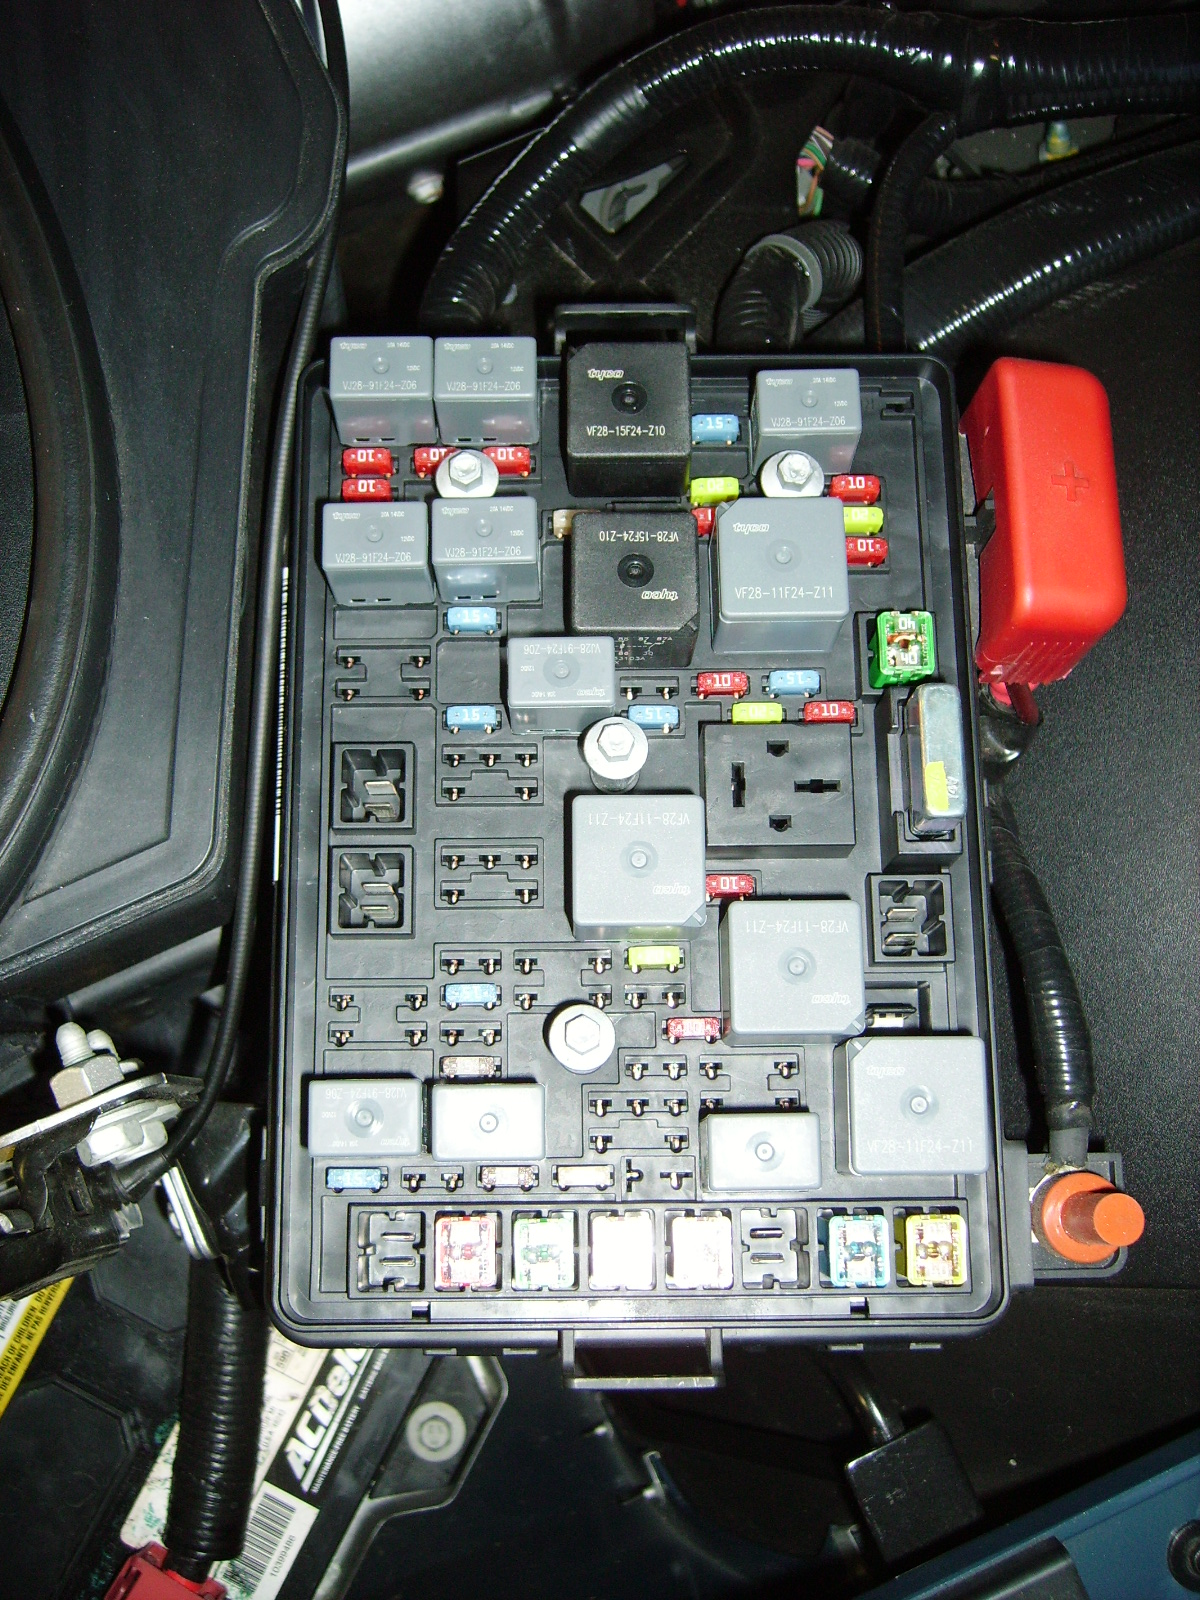 40354d1305120997 reverse light out fuse box under hood reverse light out? saturn sky forums saturn sky forum 07 saturn ion fuse box at readyjetset.co